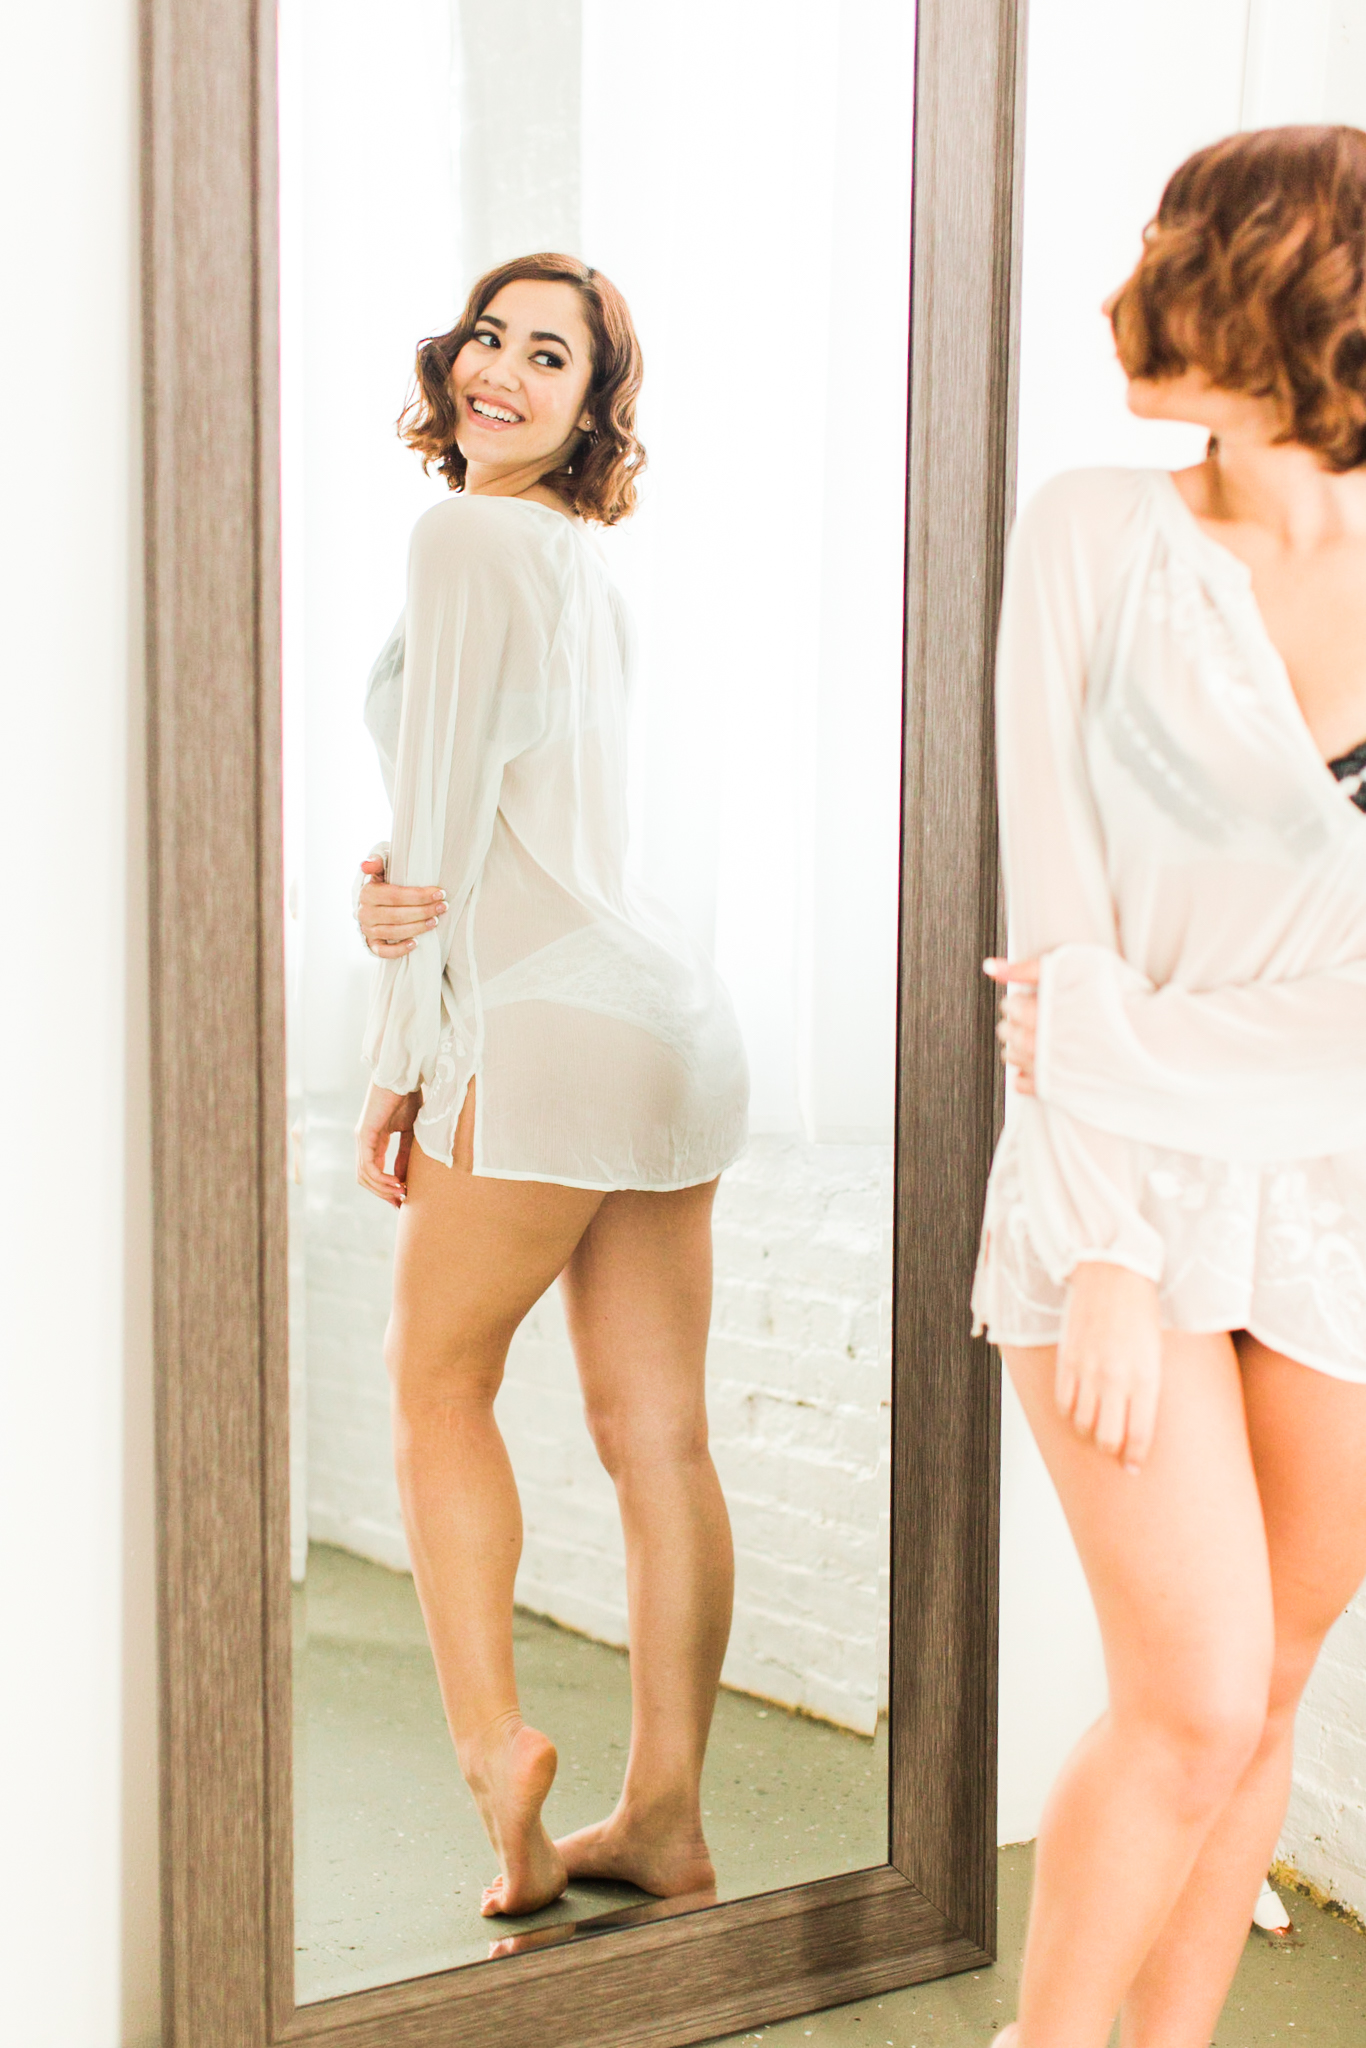 Bridal Boudoir - Shaina Lee Photography WEB-120.jpg